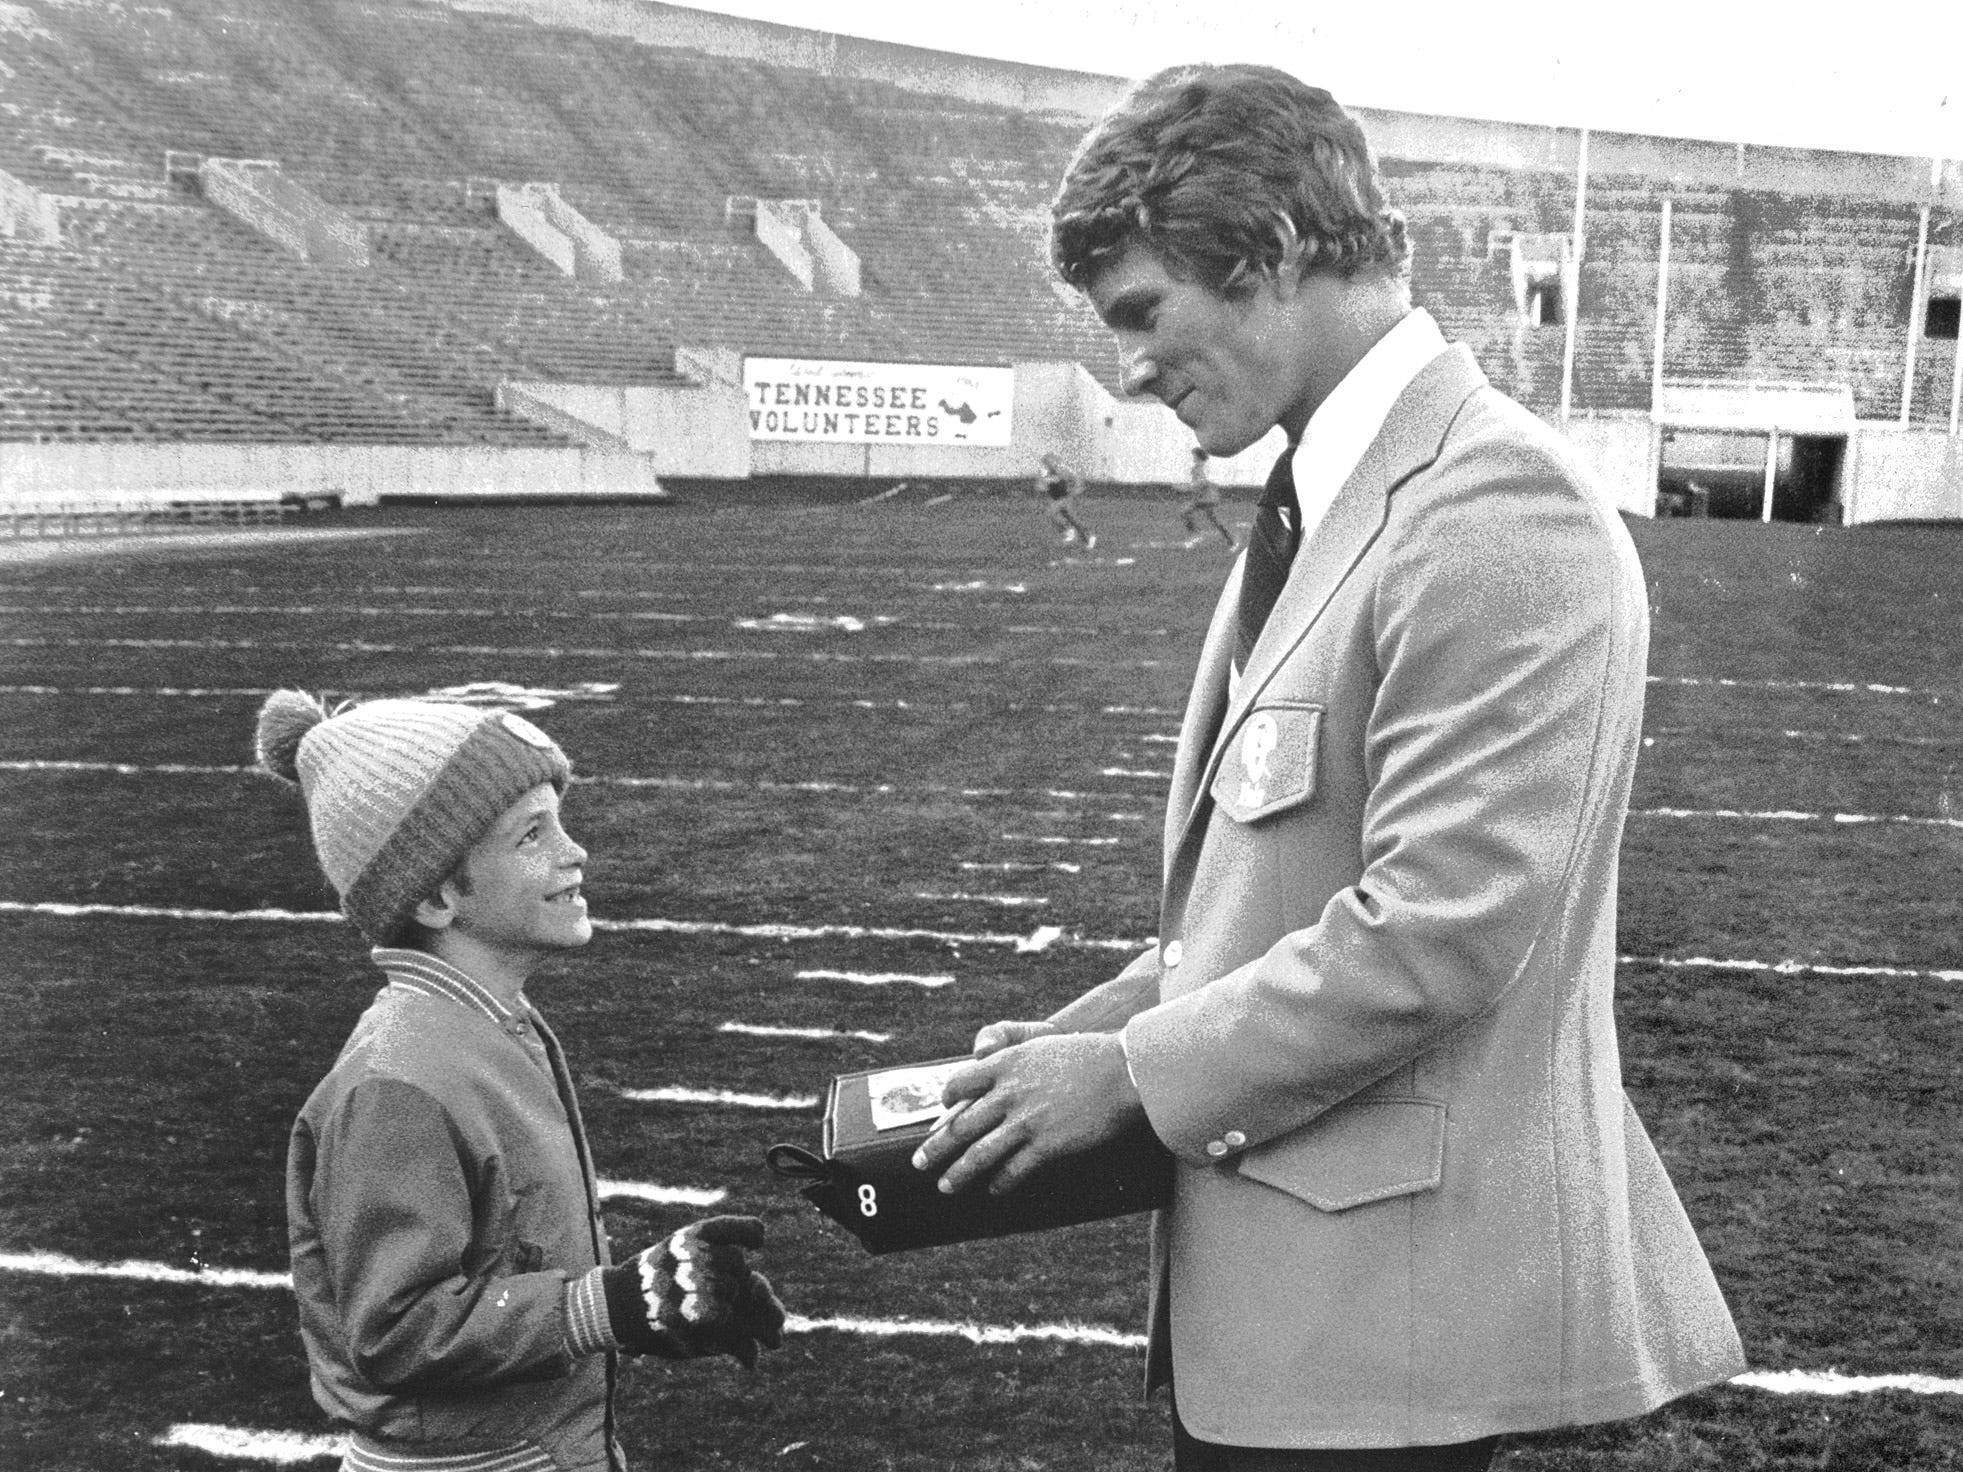 Seven-year-old Bryan Donnelly, son of Mr. and Mrs. Jim Donnelly of 2579 Cedarville Drive, gets an autograph from University of Tennessee quarterback Randy Wallace at Memphis Memorial Stadium on Nov. 14, 1975. The Vols were in town to play Ole Miss the following day and the Rebels won 23 to 6 in front of 51,389. Wallace was sacked a staggering nine times. Memphis State beat Houston 14 to 7 in the second half of a day-night doubleheader.